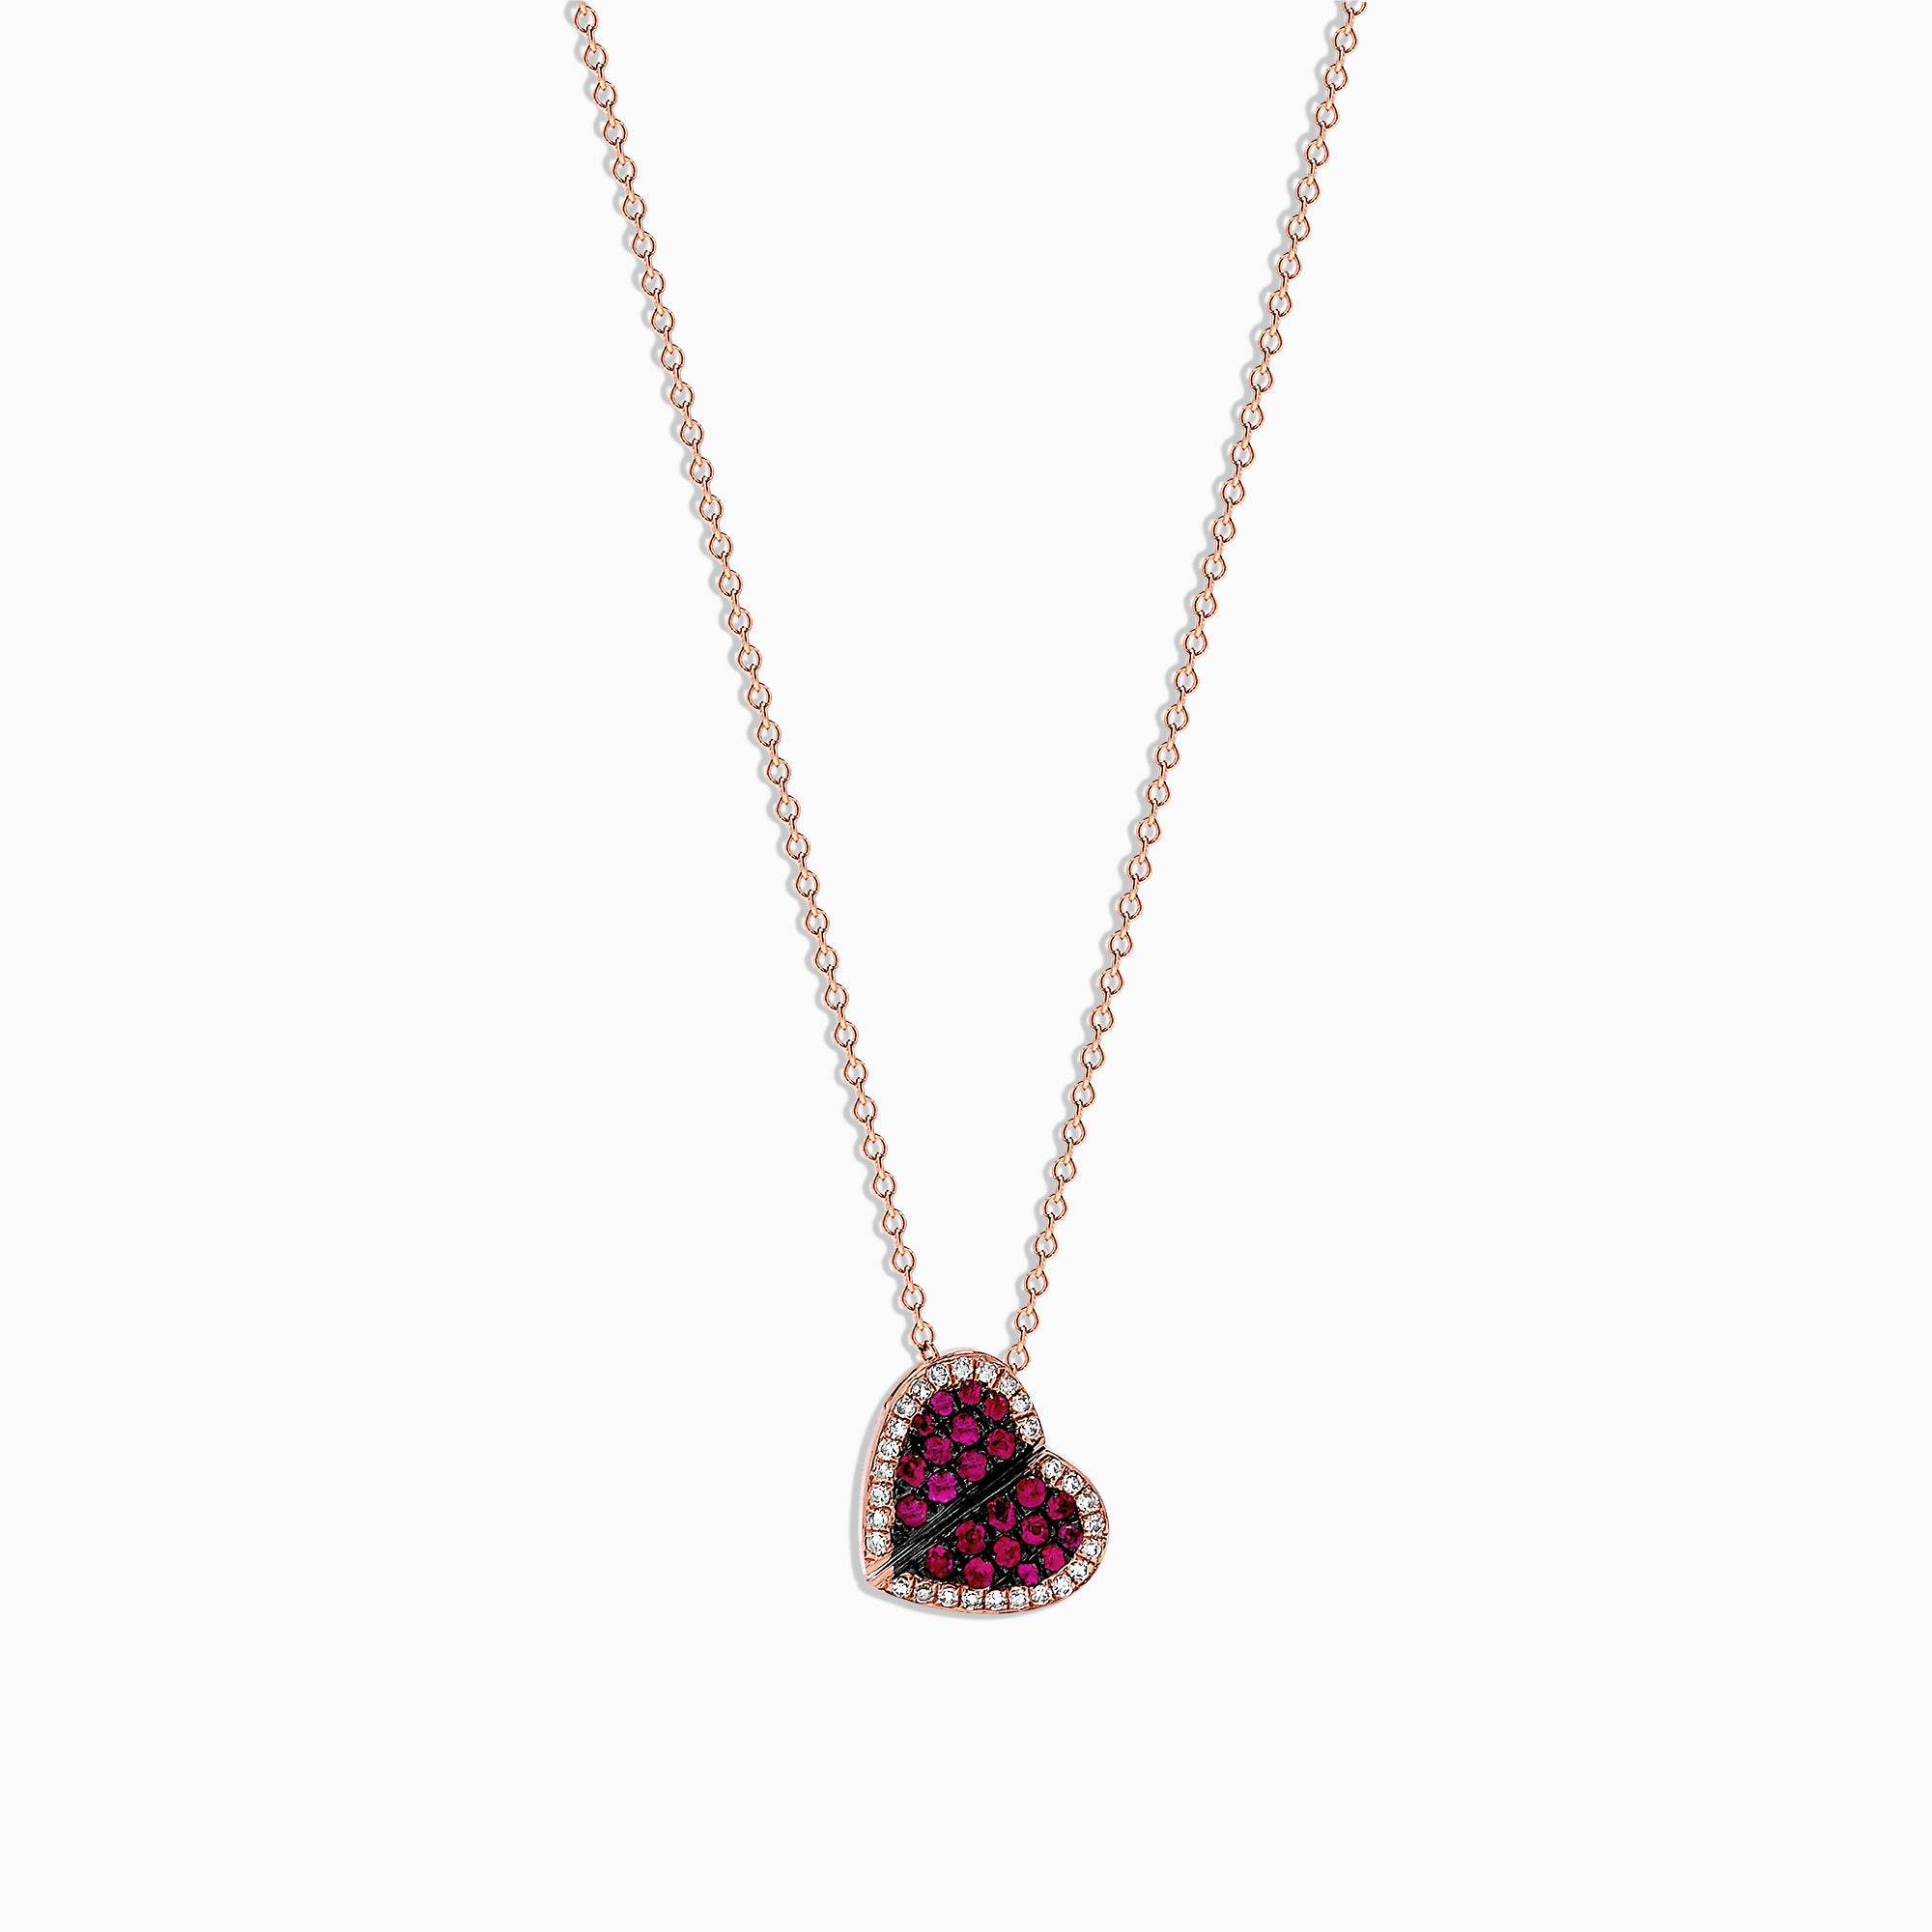 Effy Diversa 14K Rose Gold Ruby and Diamond Pendant, 0.47 TCW